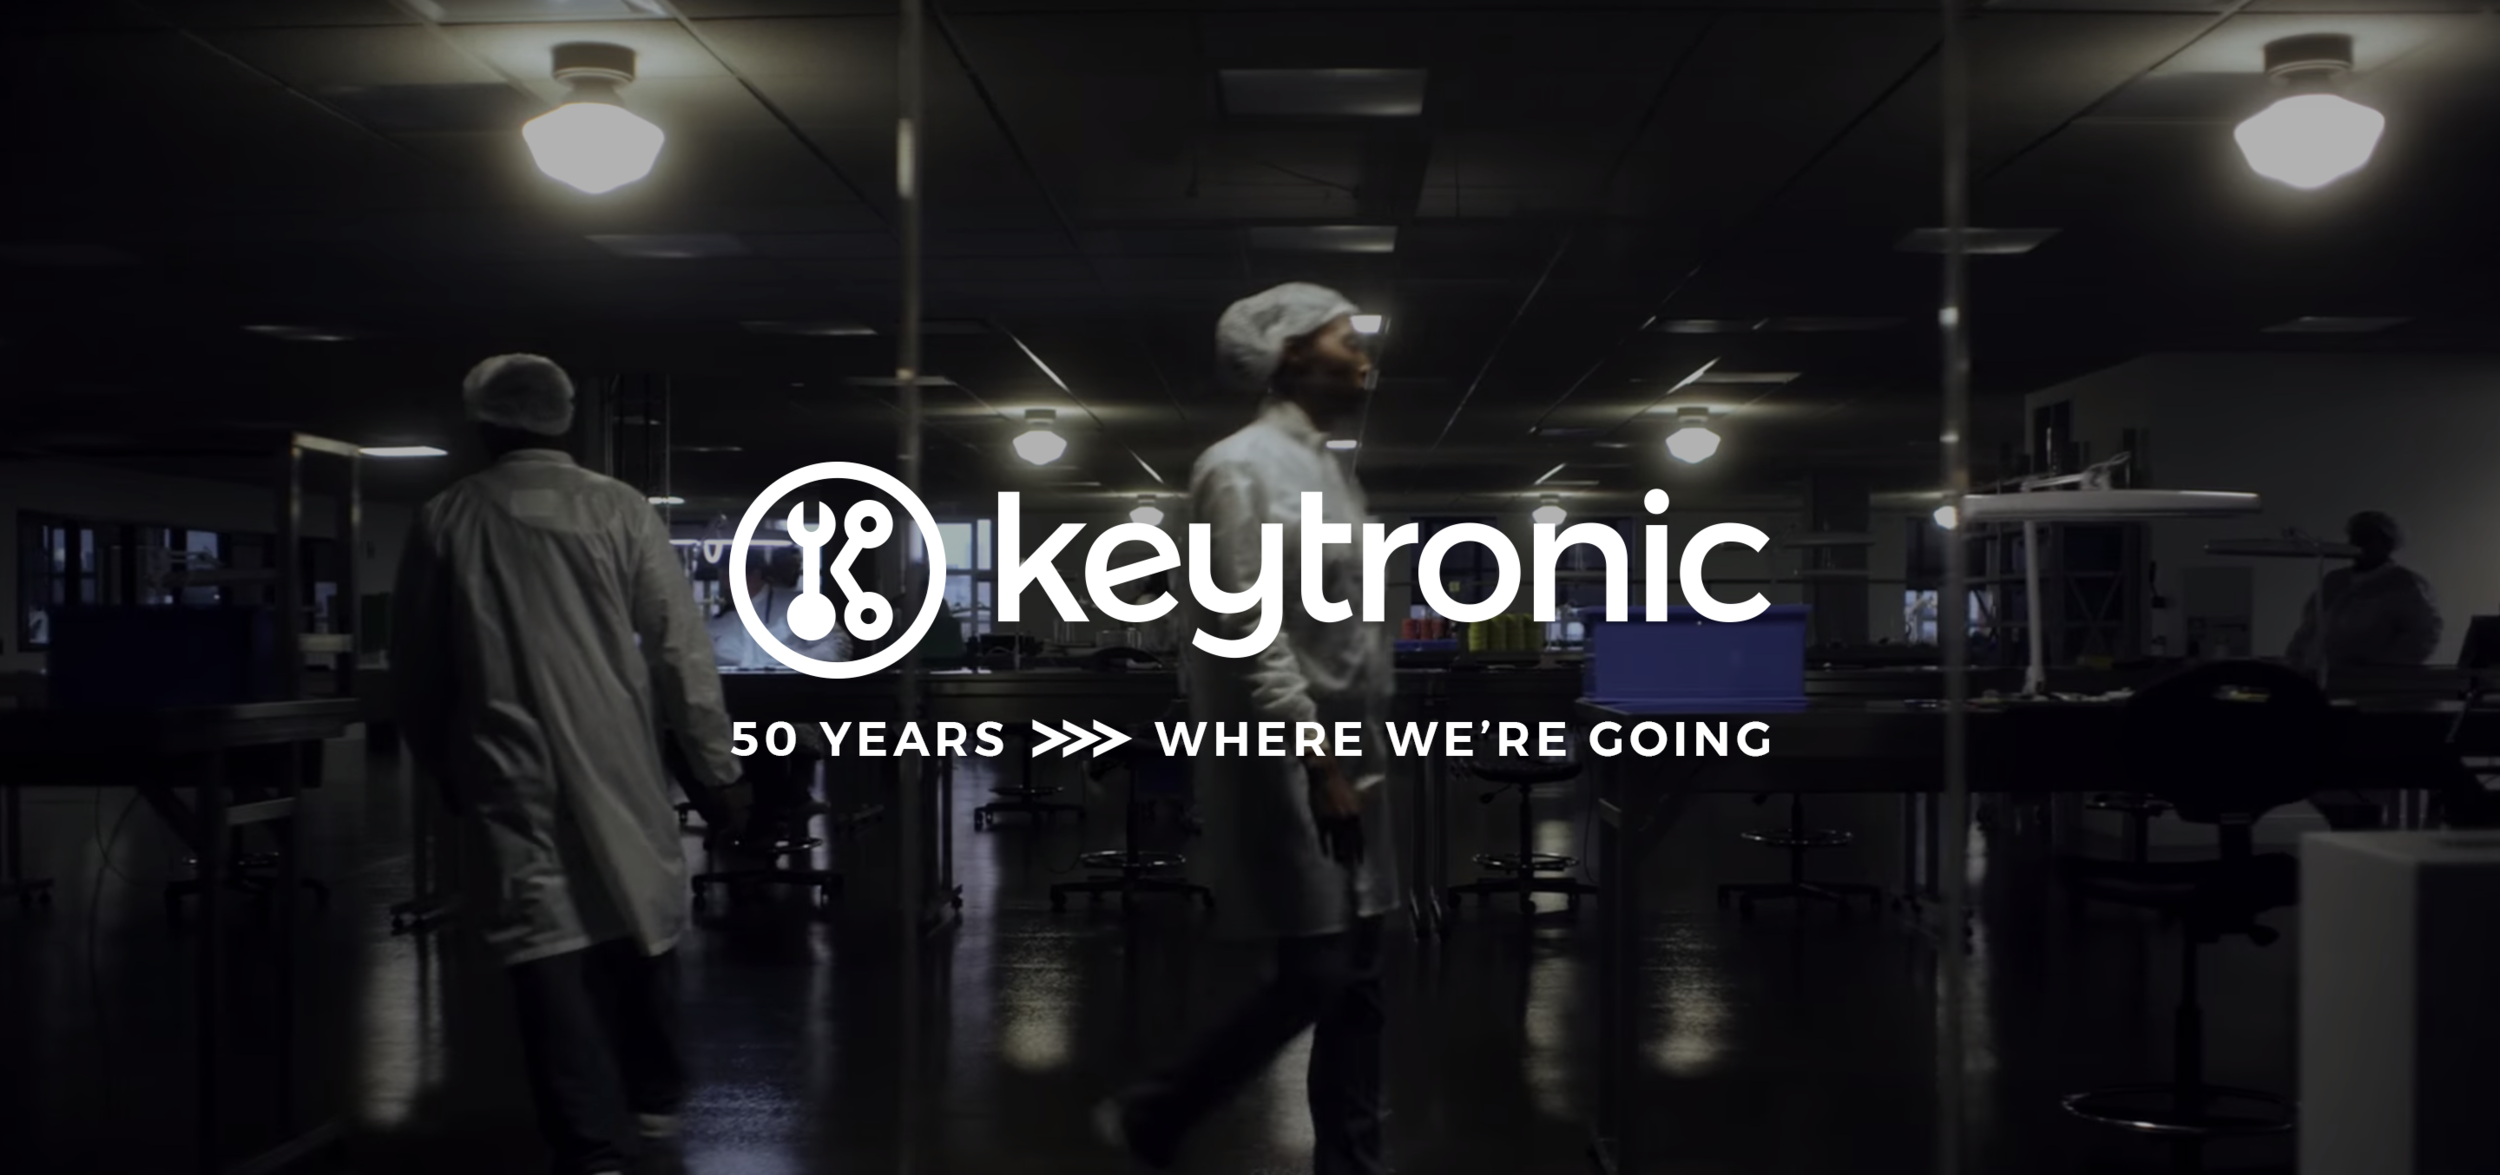 Keytronic_50Years-WhereWereGoing2.png